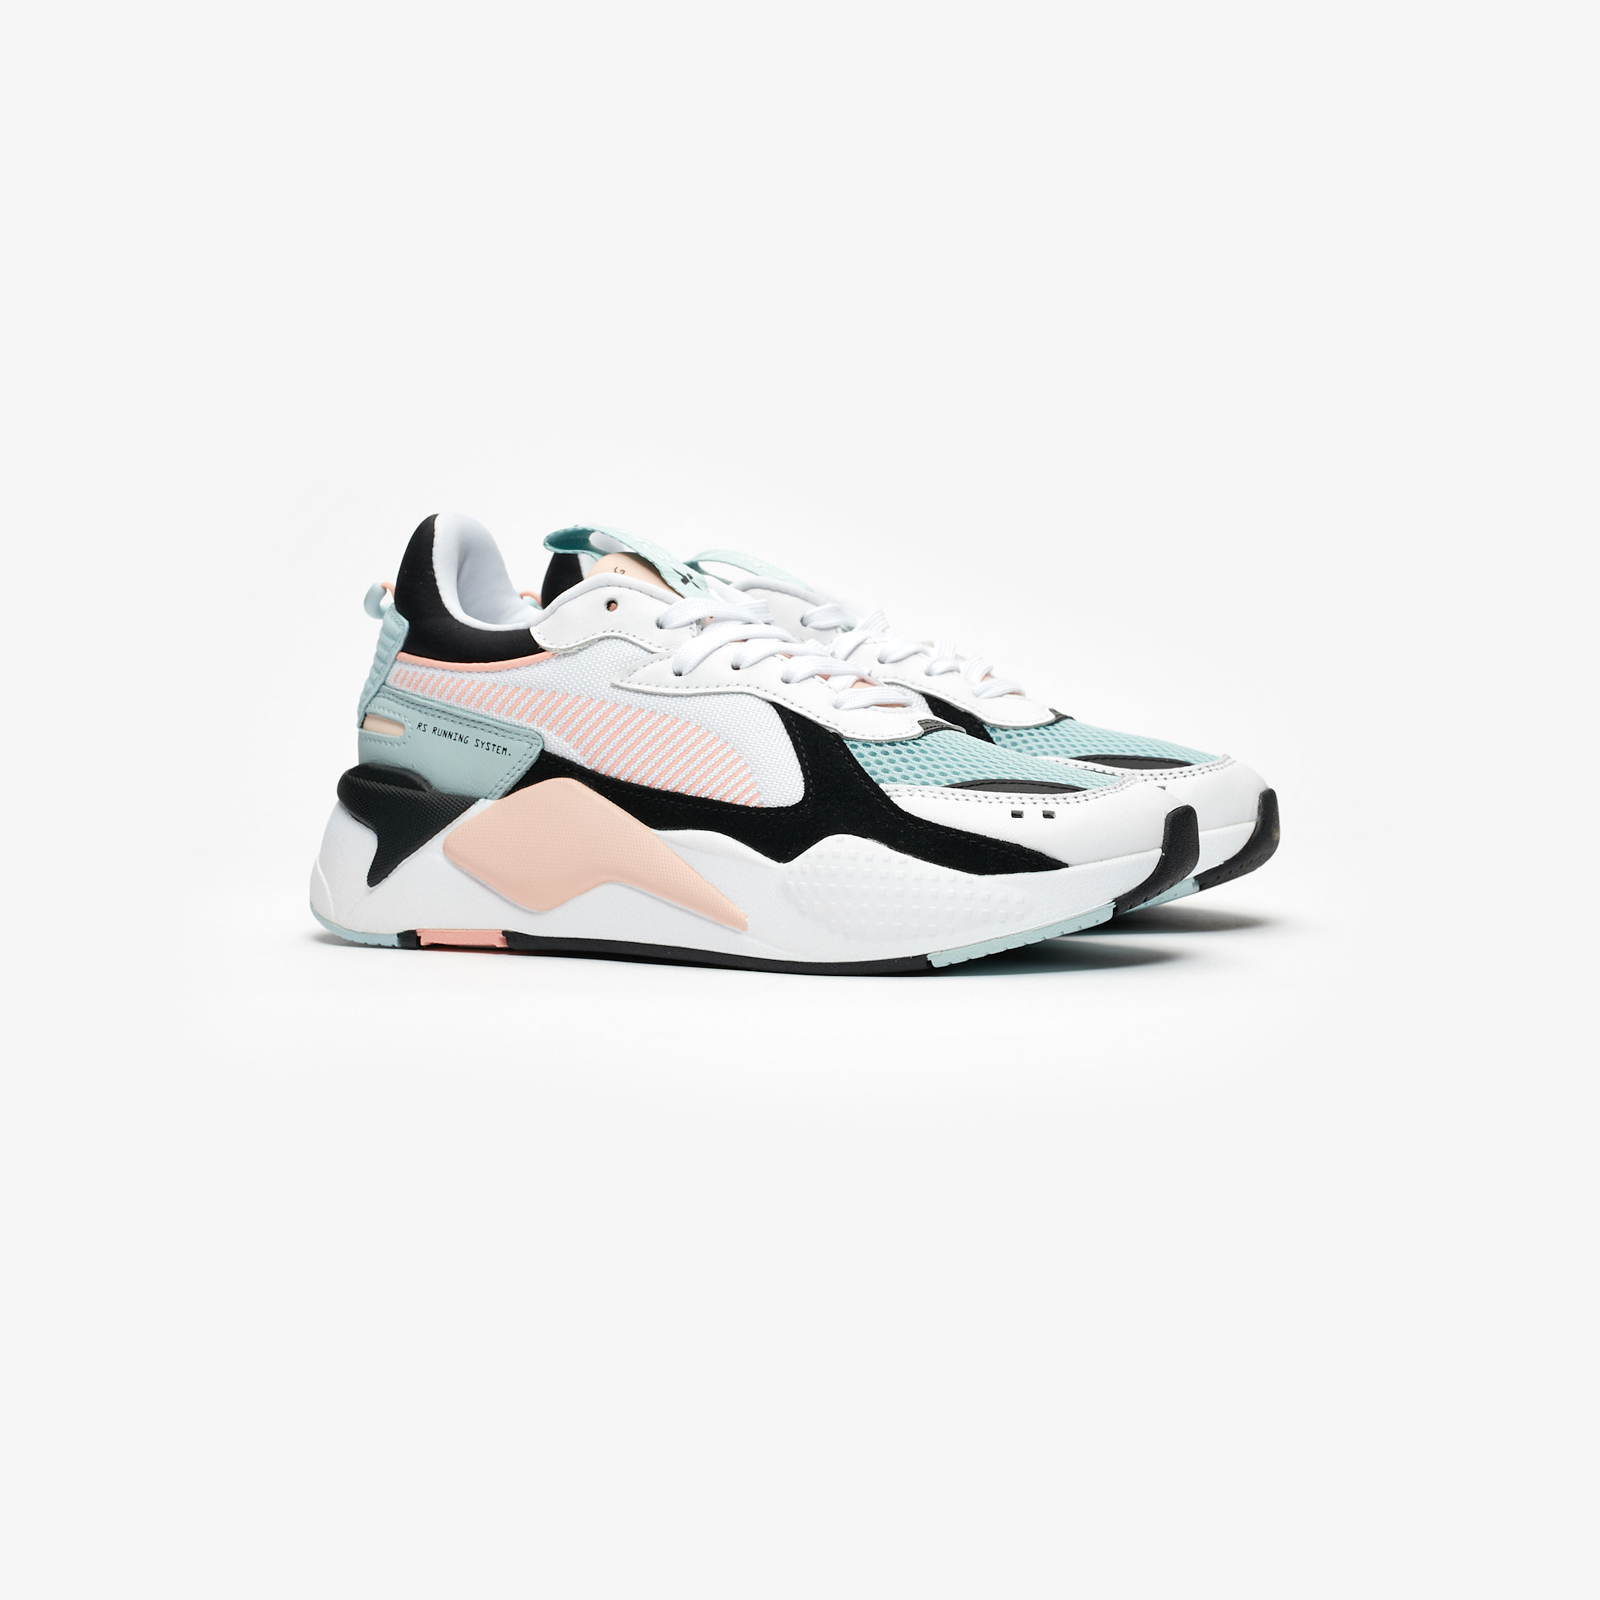 Puma RS X Reinvention 369579 06 Sneakersnstuff